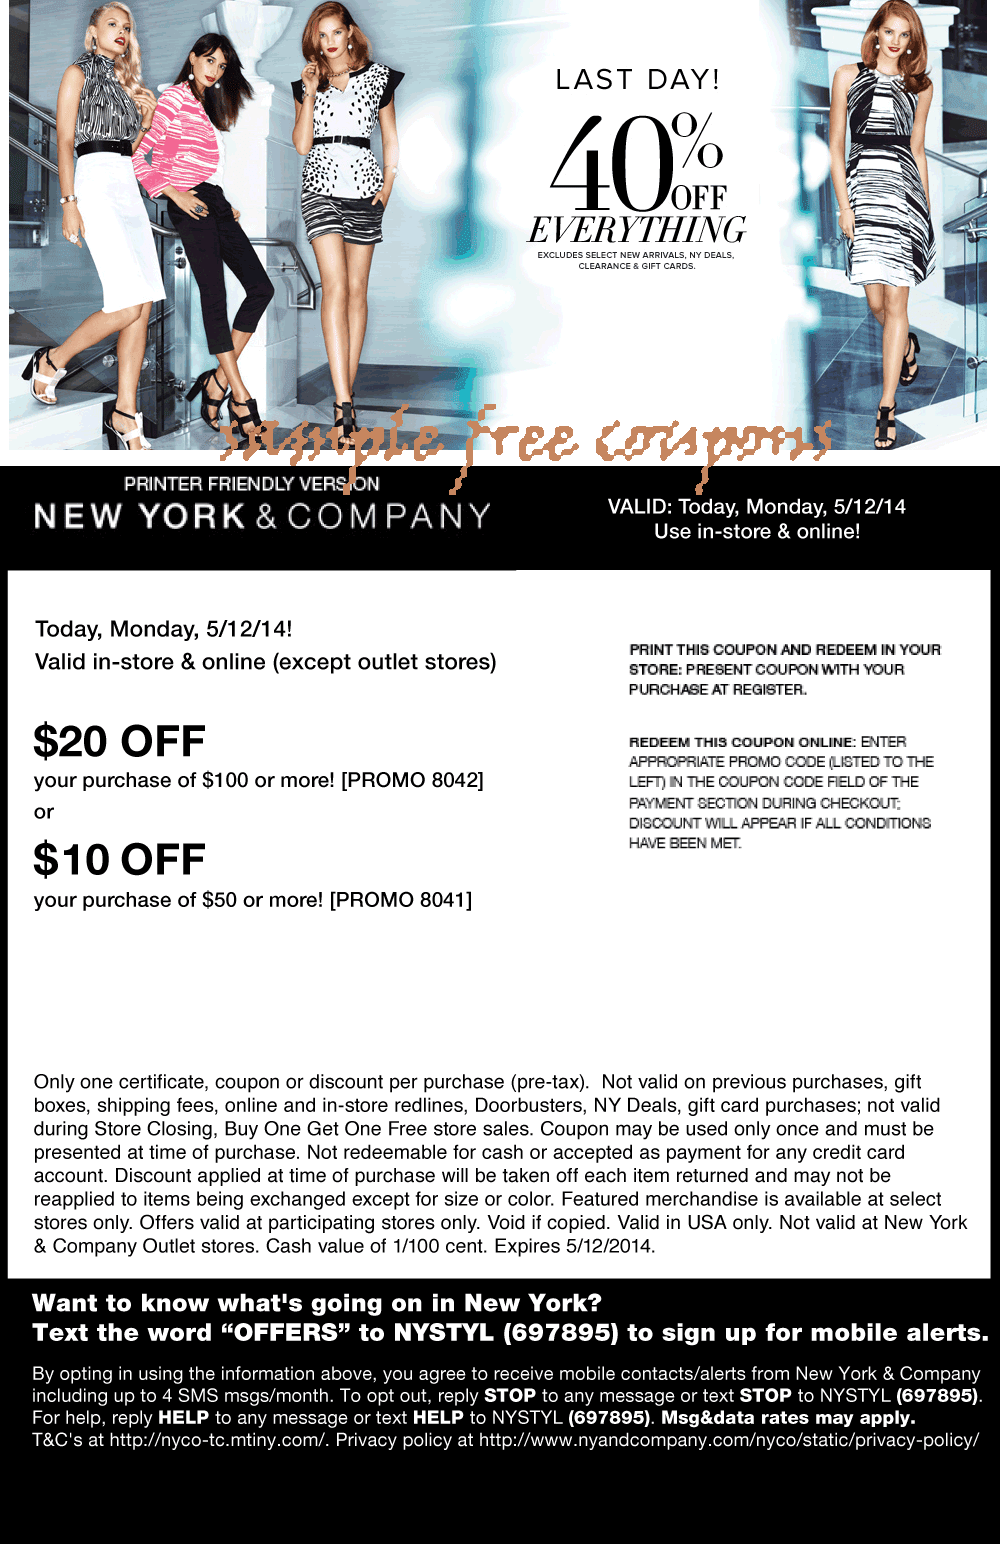 Enterprise coupons new york